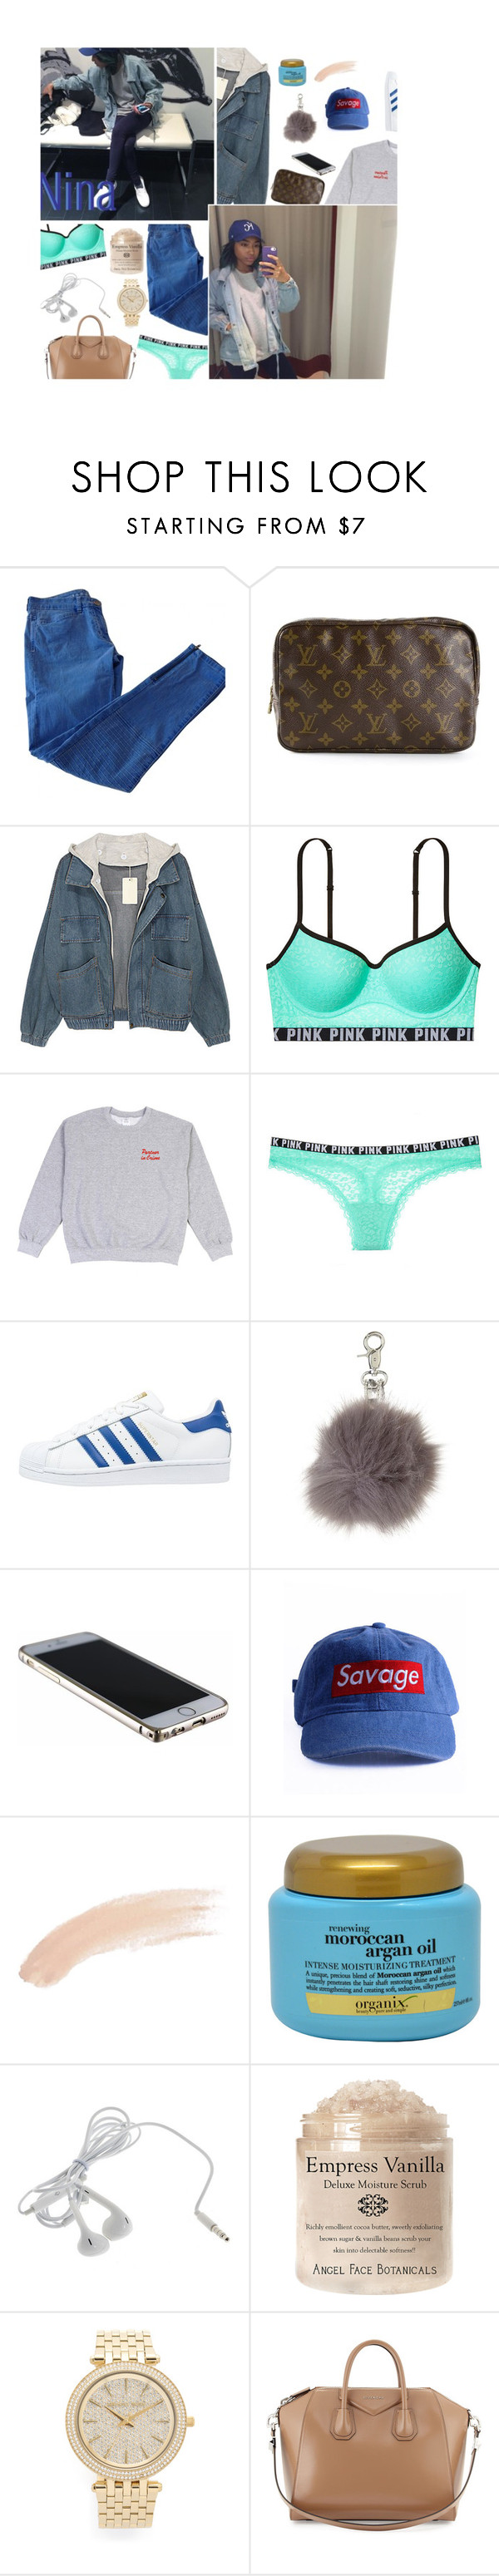 """Somebody make my hotline bliing"" by p-hysical ❤ liked on Polyvore featuring Sandro, Louis Vuitton, Victoria's Secret, adidas Originals, Topshop, Organix, Michael Kors, Givenchy, women's clothing and women"